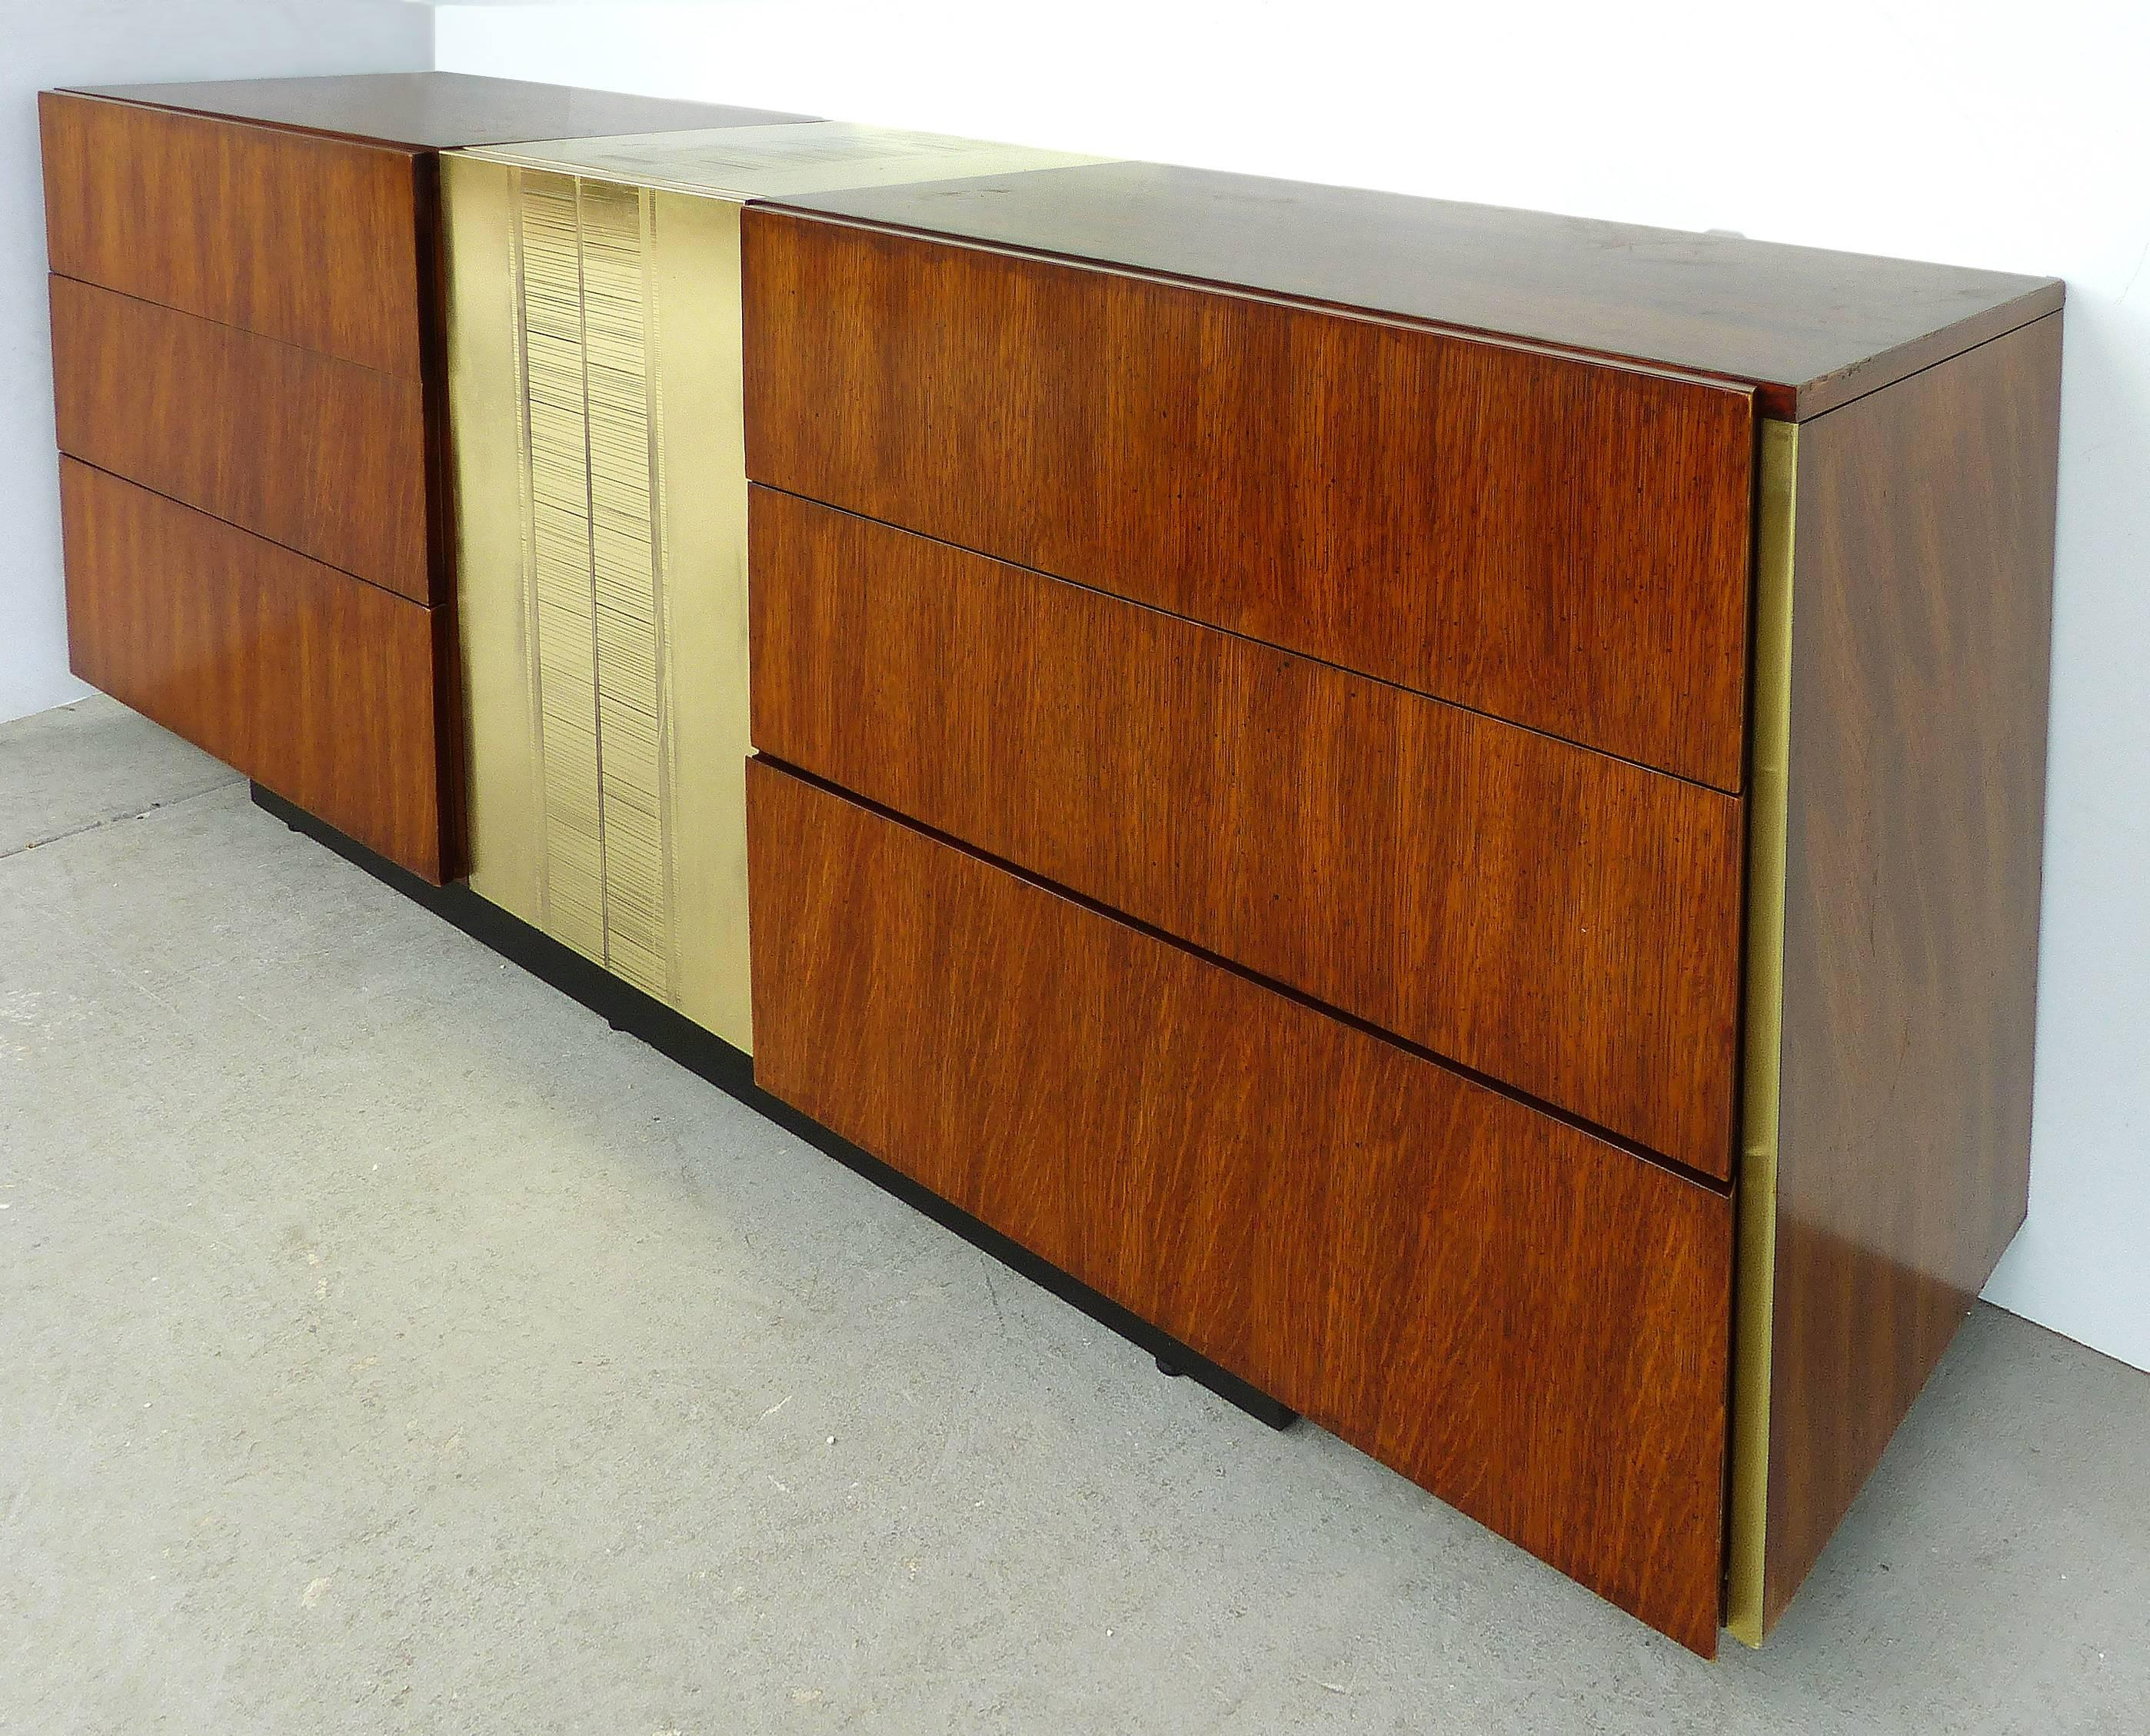 Mid Century Modern Dresser By National Furniture Co Of Mt Airy N C For At 1stdibs